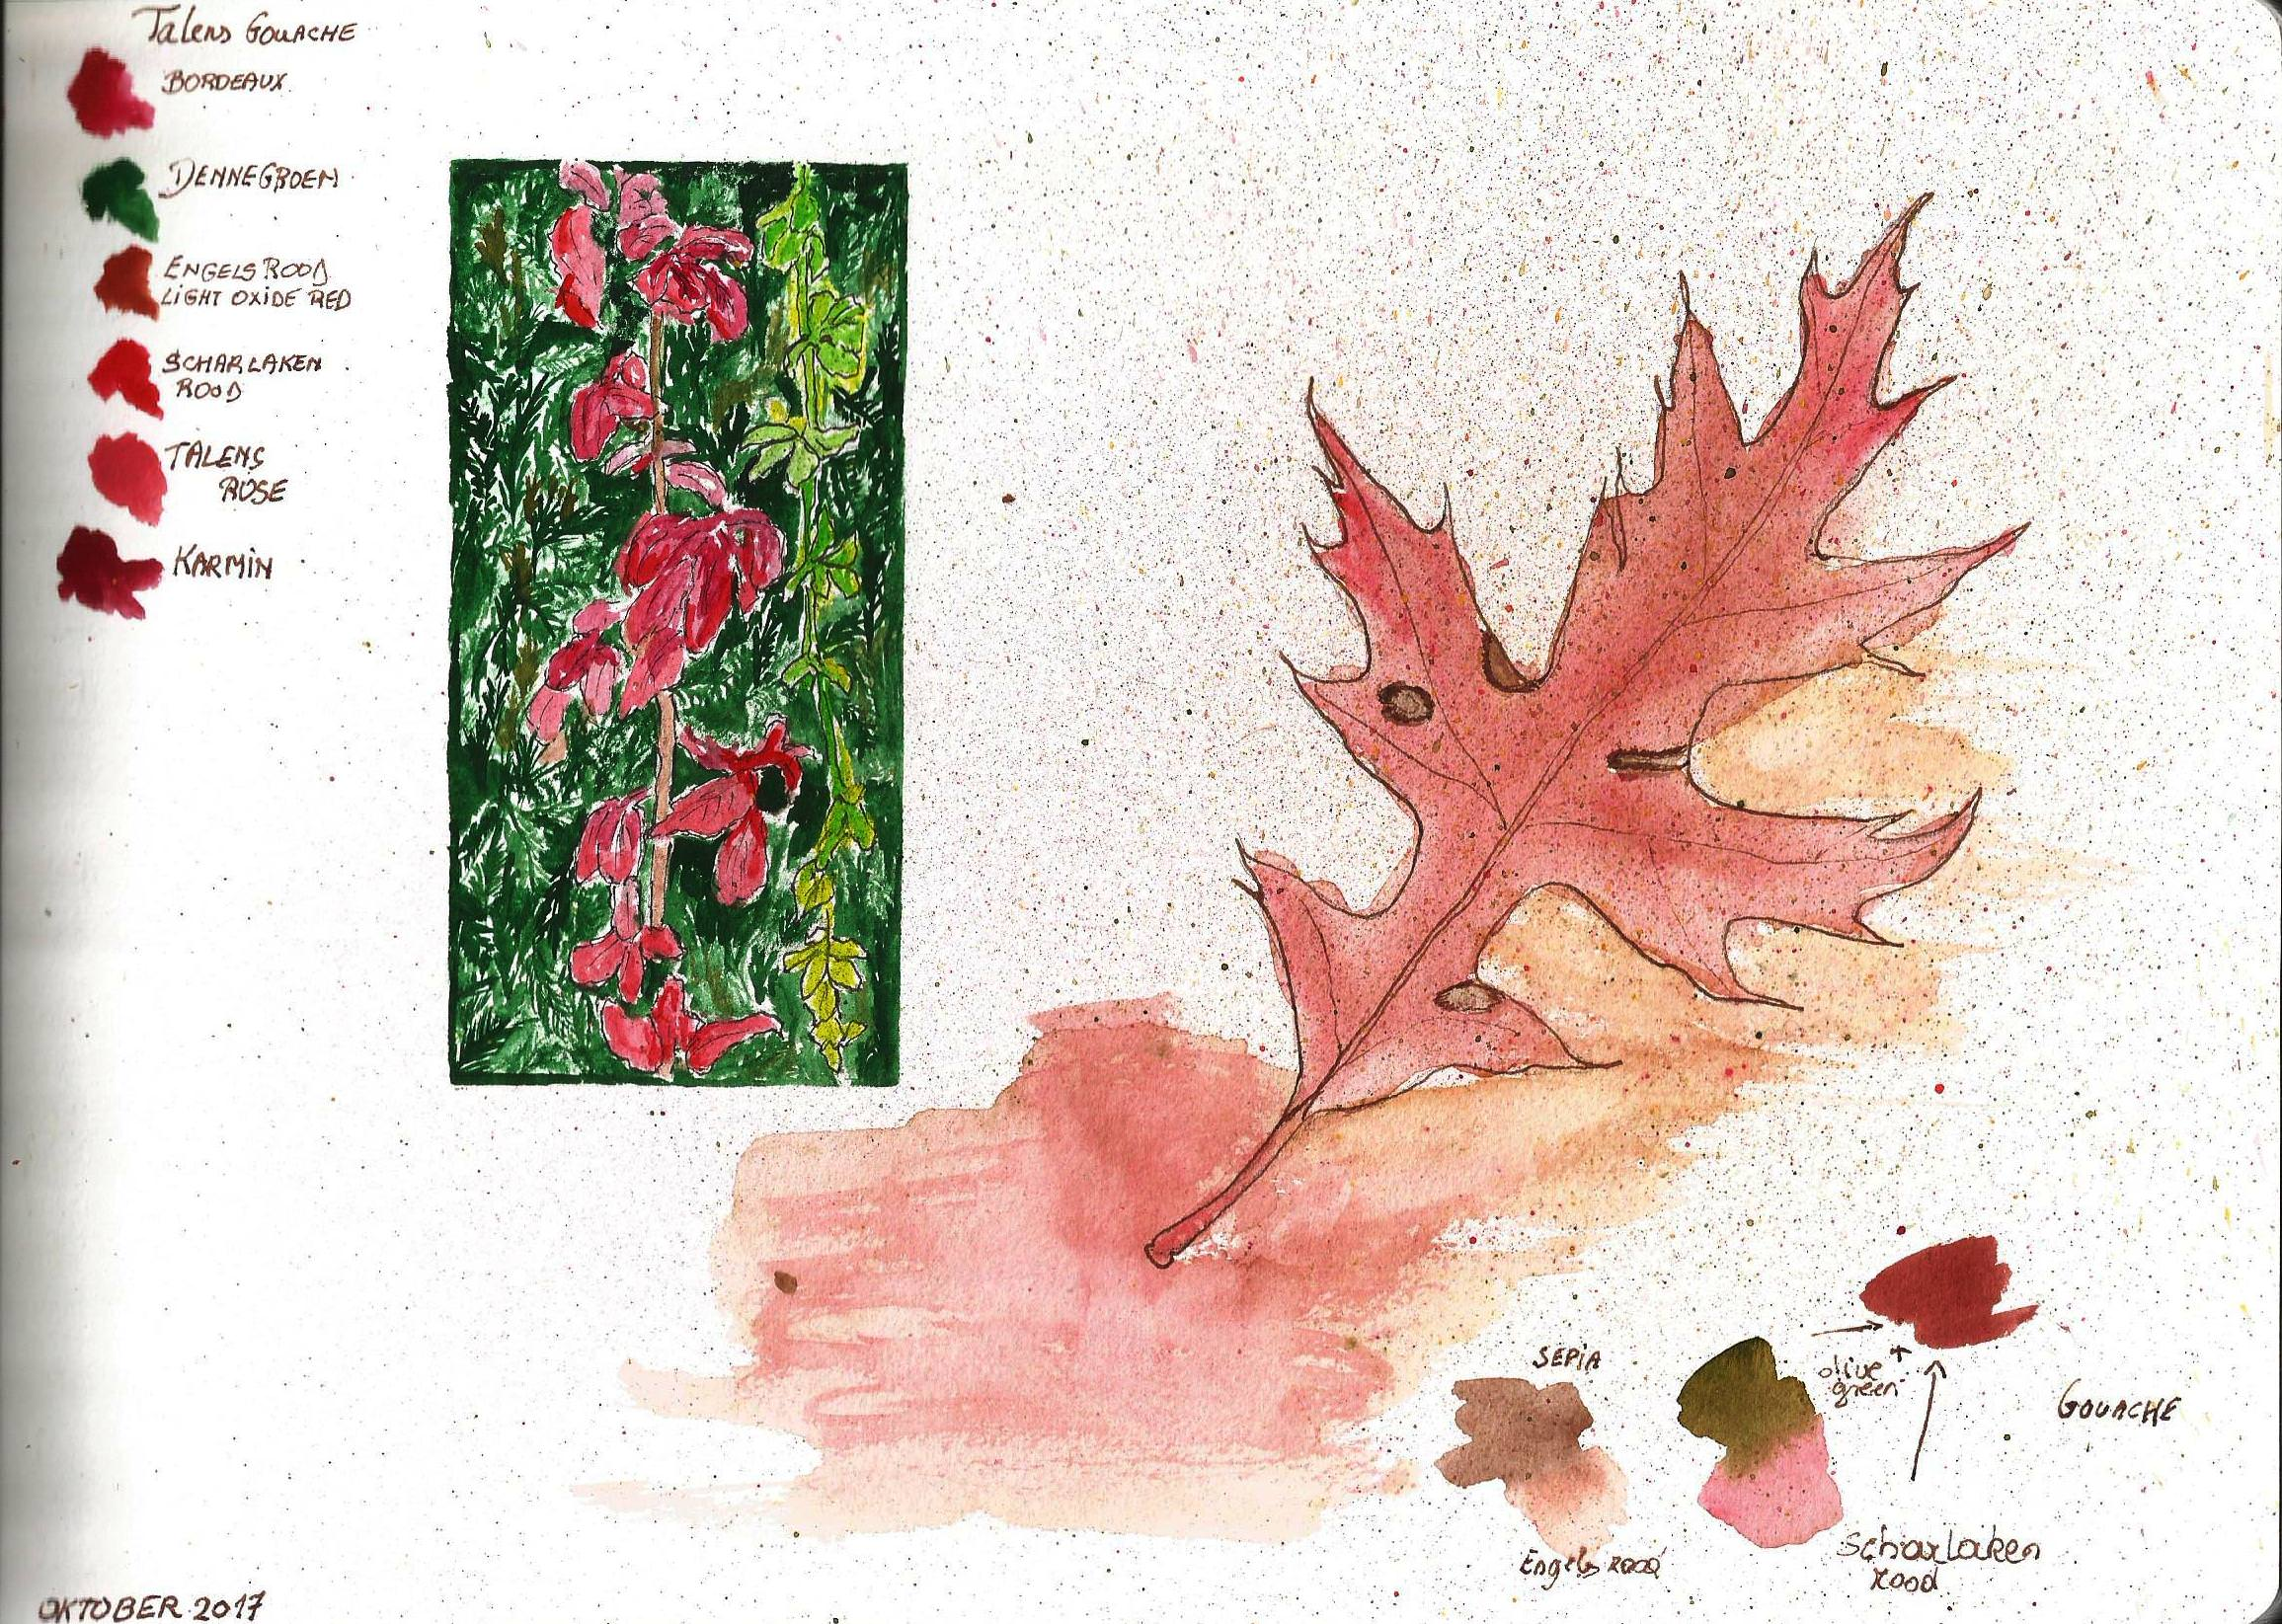 Herfstbladeren , leaf color study from the sketchbook of Debora Missoorten, 2017